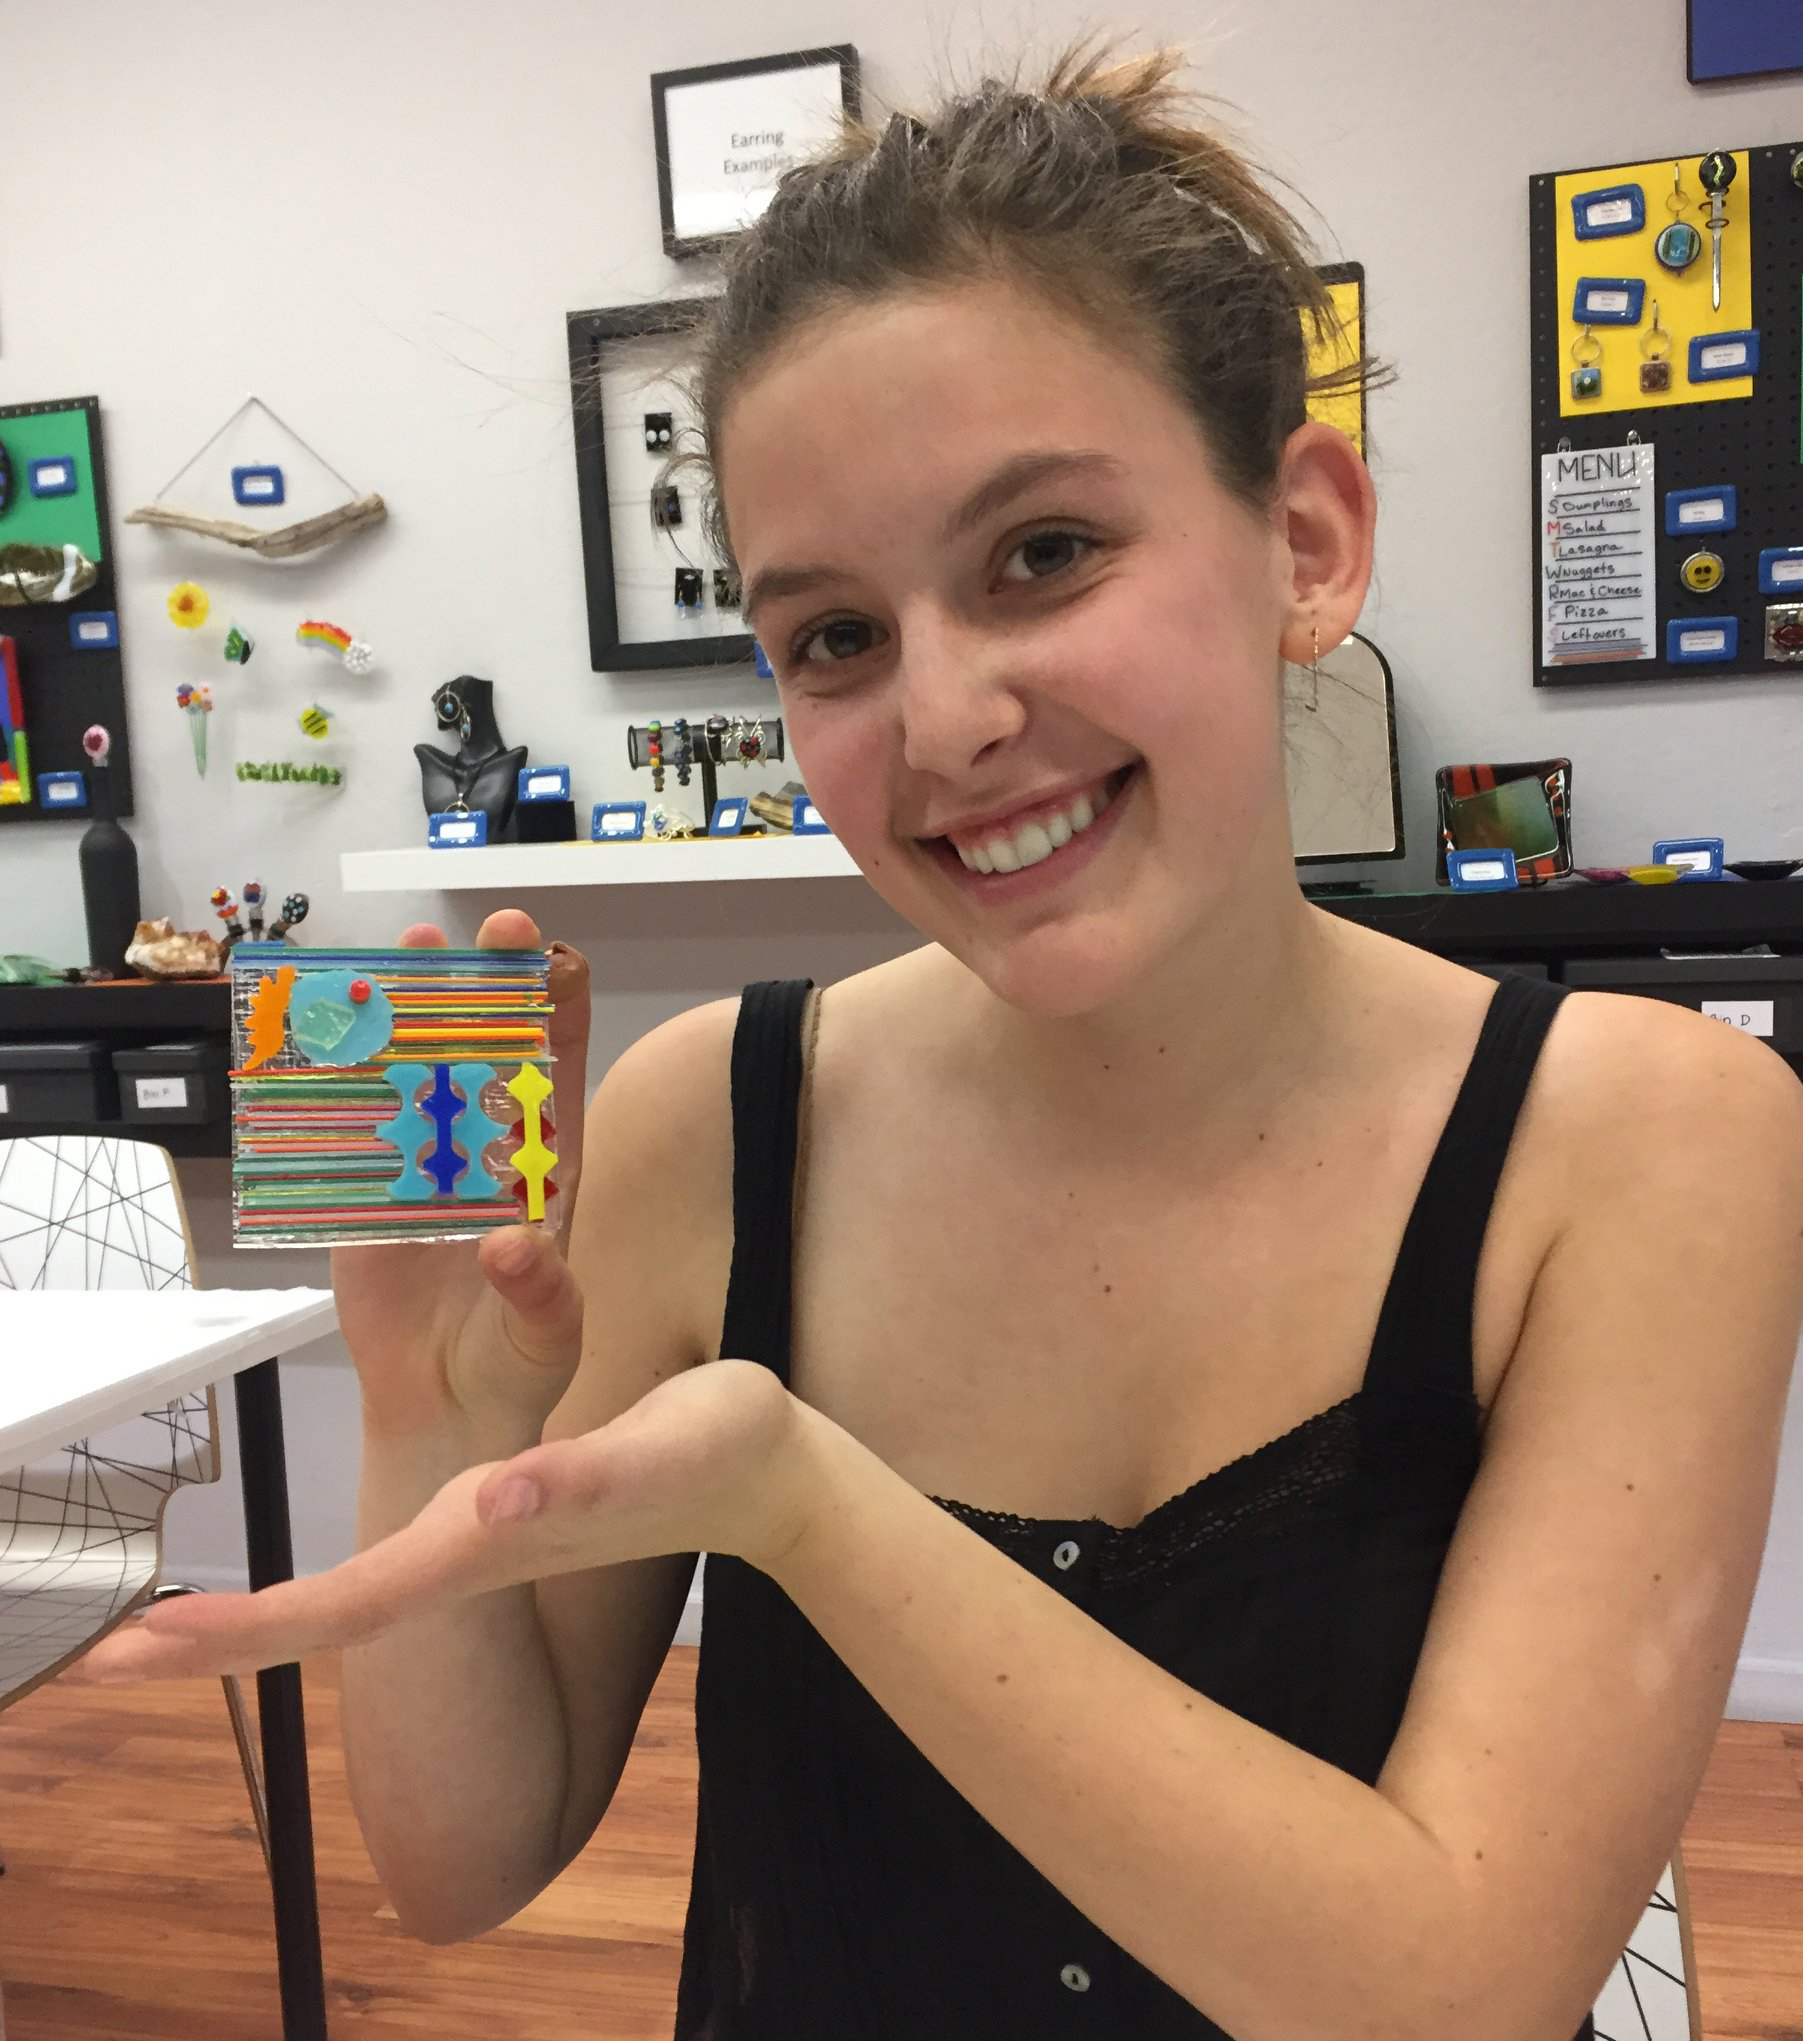 Trip: I Made it Glass! - November 8th, 2019Join Teen Zone on its first trip of the school year as we head over to I Made it Glass, a local art studio where participants will get to make awesome art projects made out of, you guessed it, glass! Don't miss out!